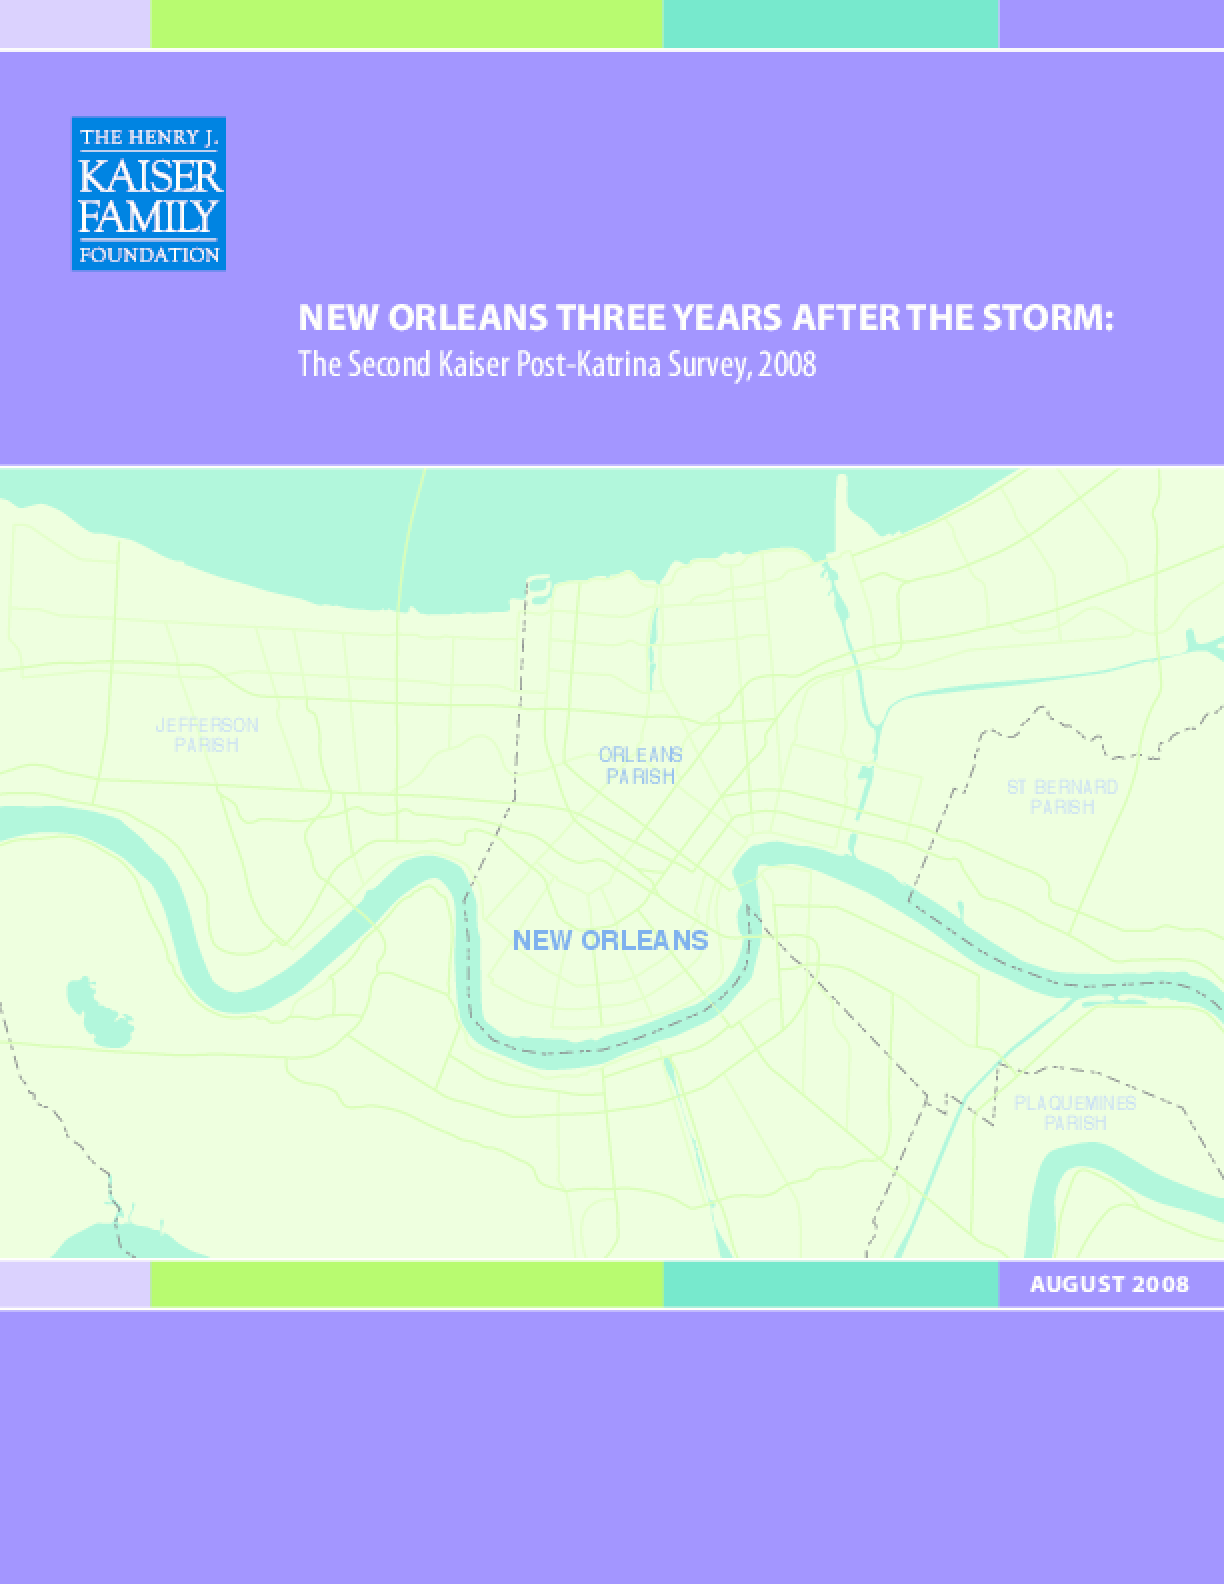 New Orleans Three Years After the Storm: The Second Kaiser Post-Katrina Survey, 2008